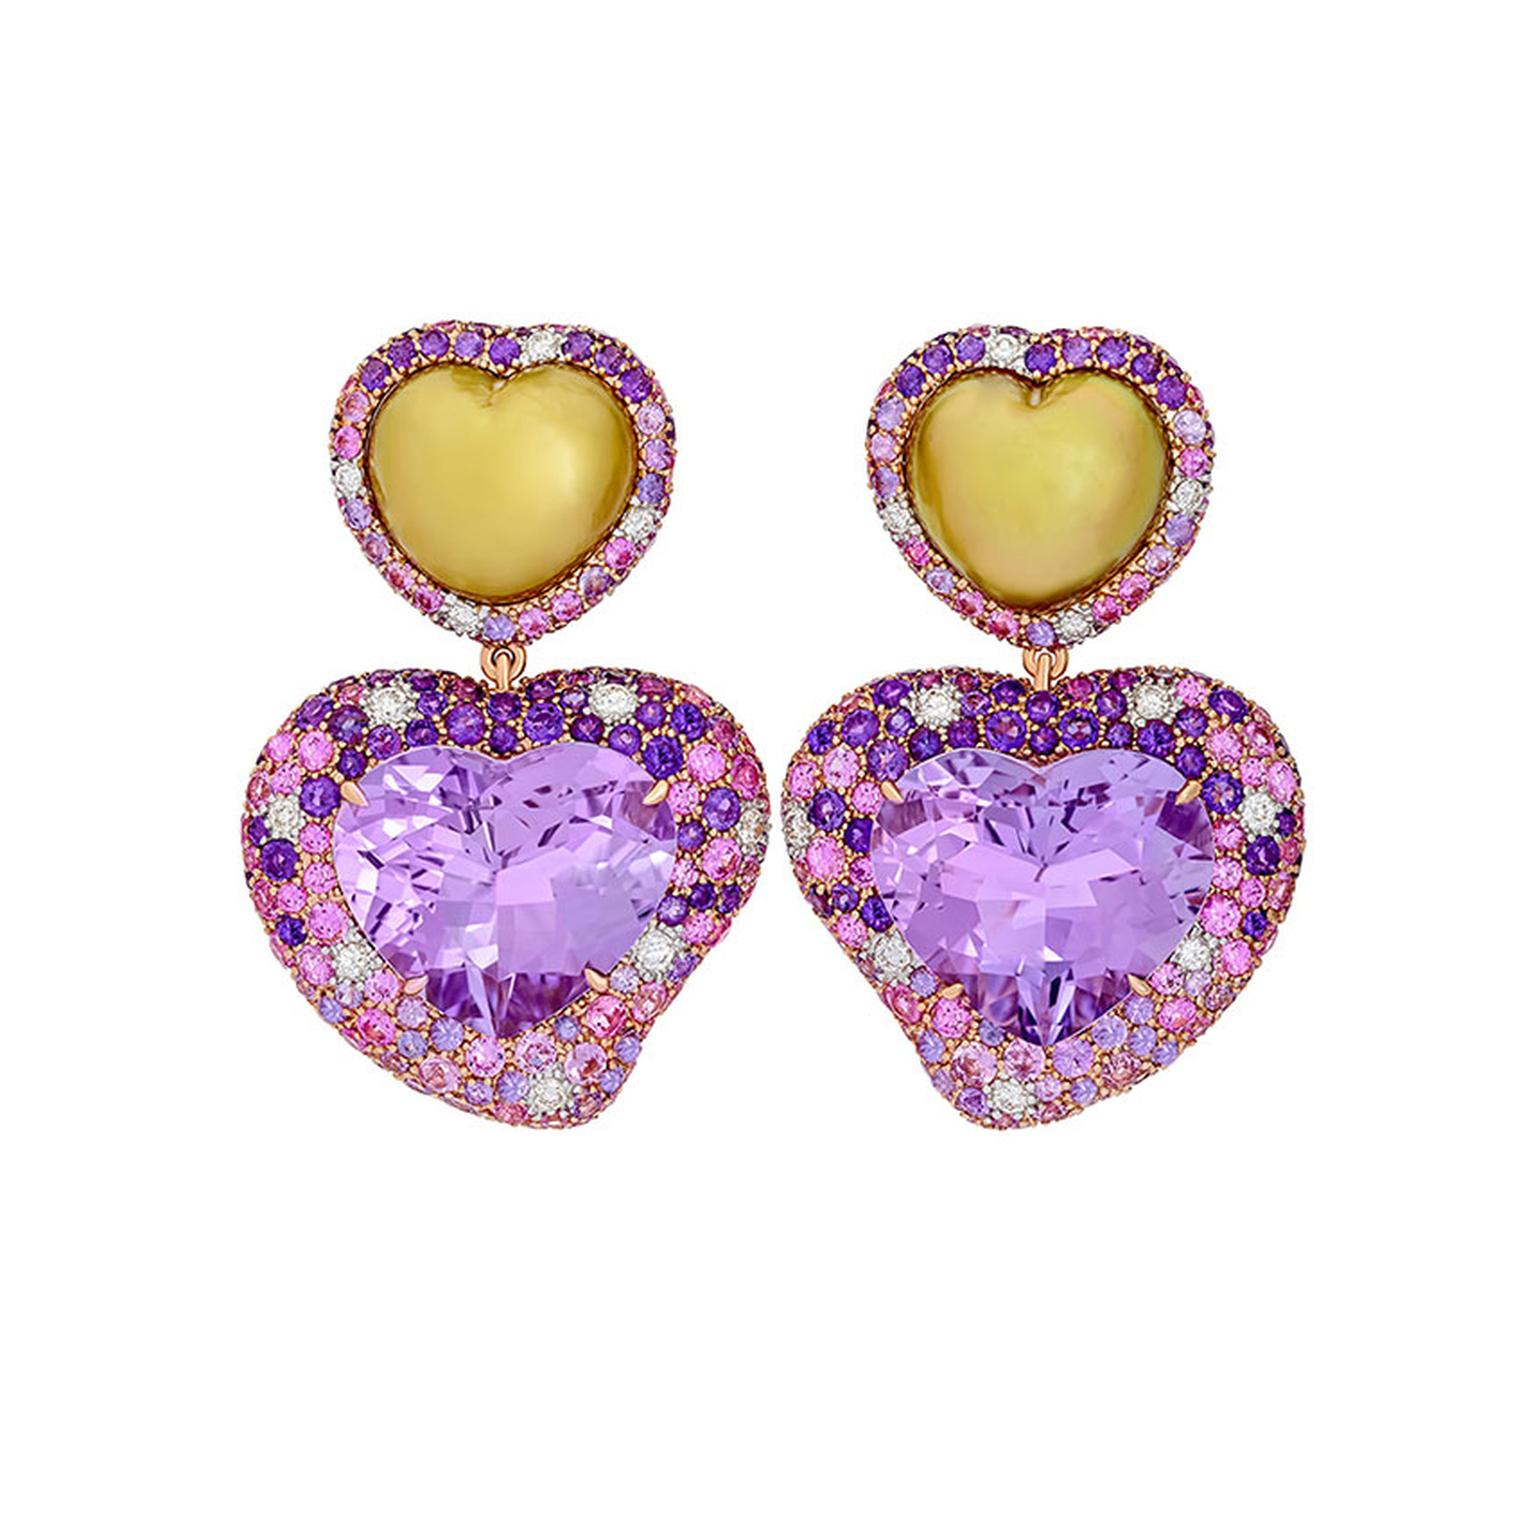 Margot McKinney Hearts Desire Rose de France Amethyst Earrings